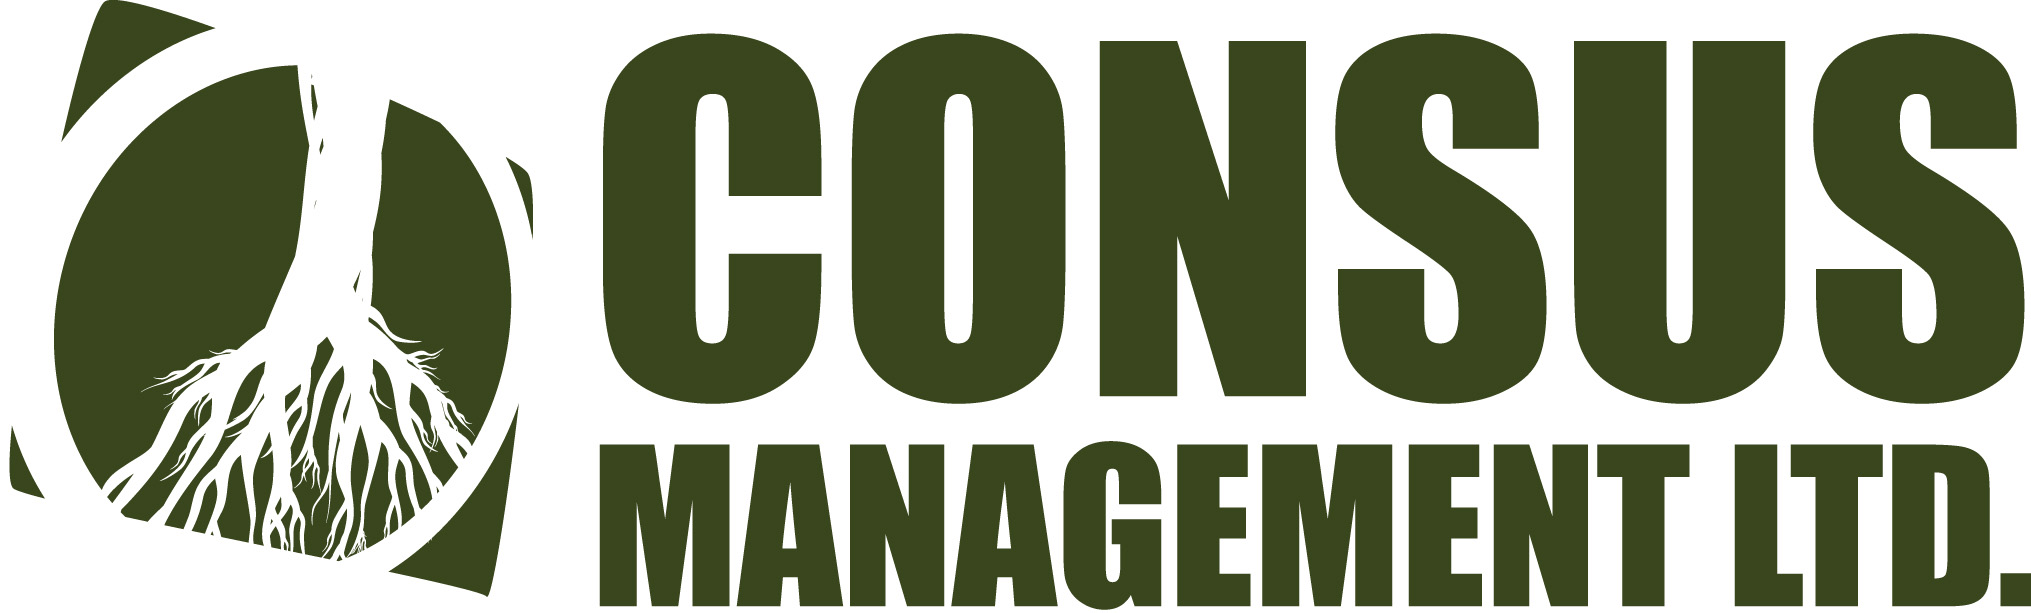 Consus Management Ltd.